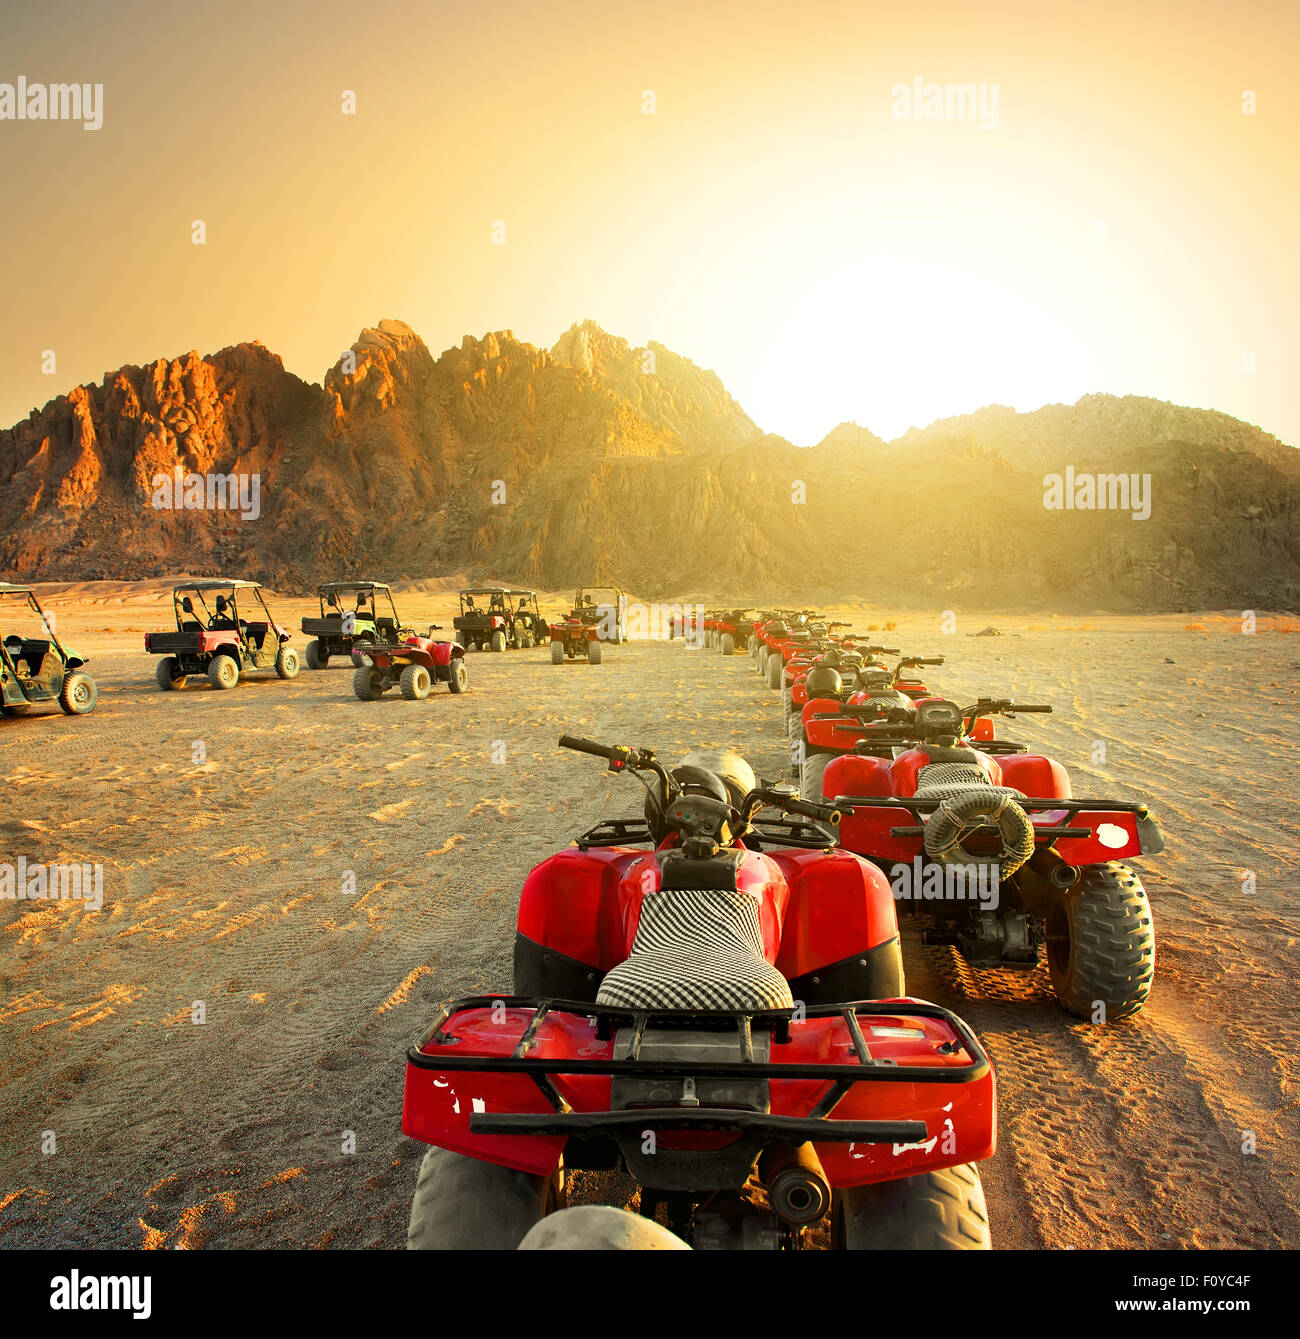 Quad bikes in desert at the sunset Stock Photo